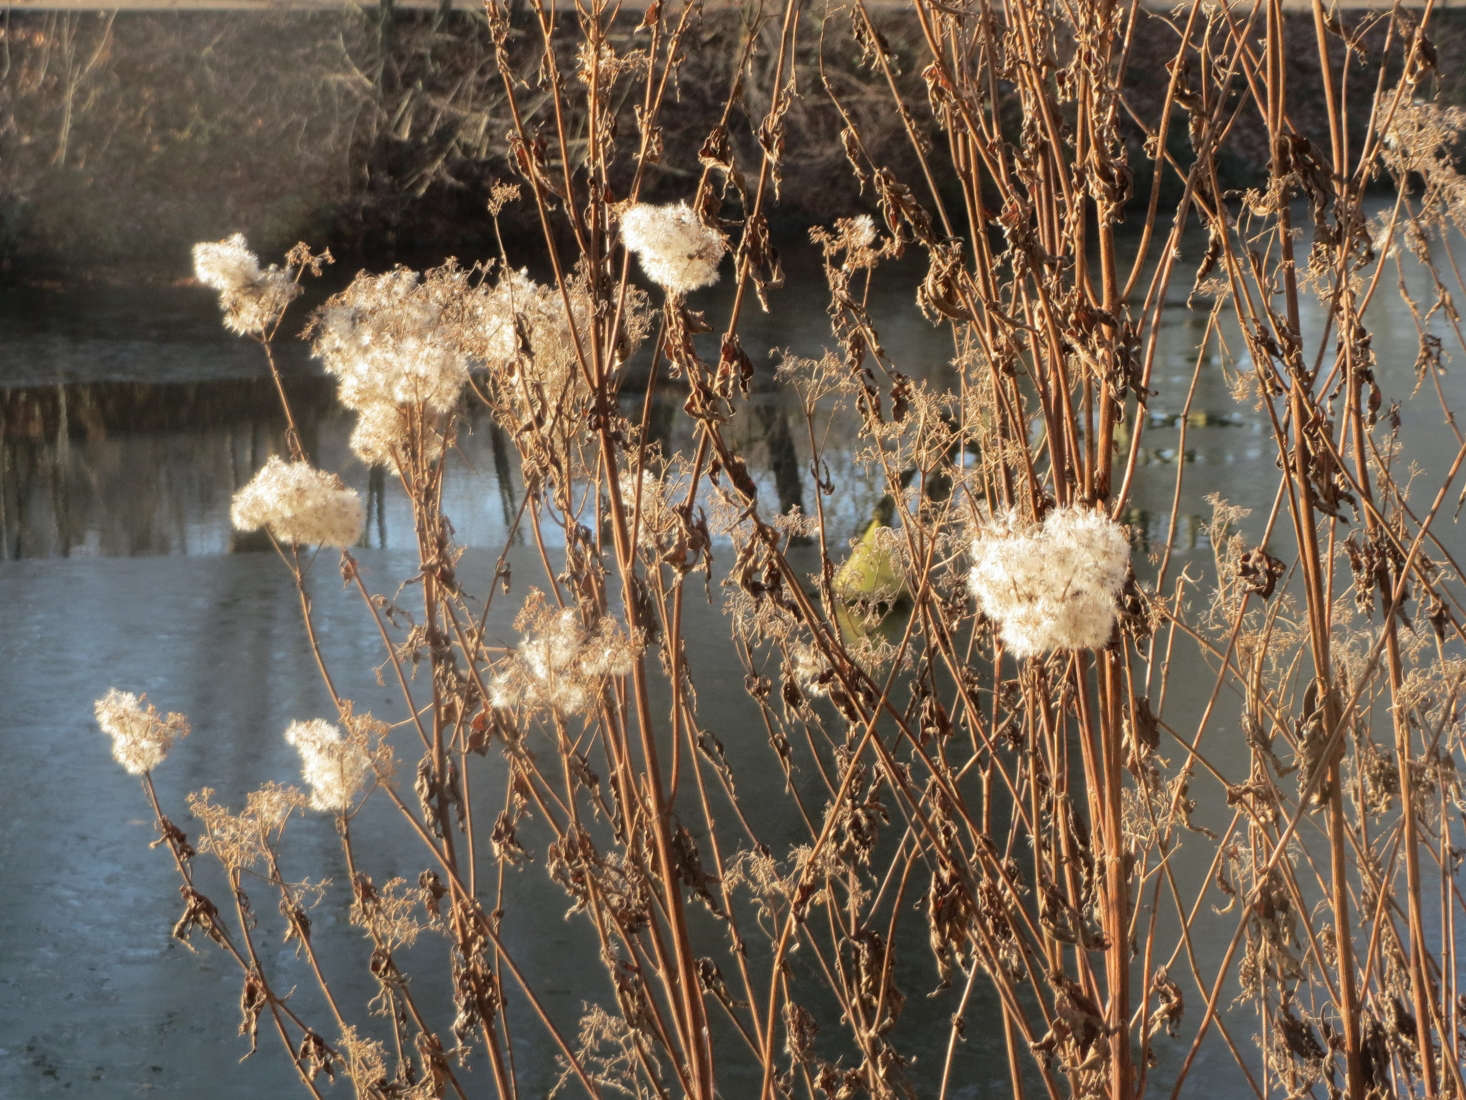 Eupatorium cannabinum in December. Photograph by Andreas Rockstein via Flickr.